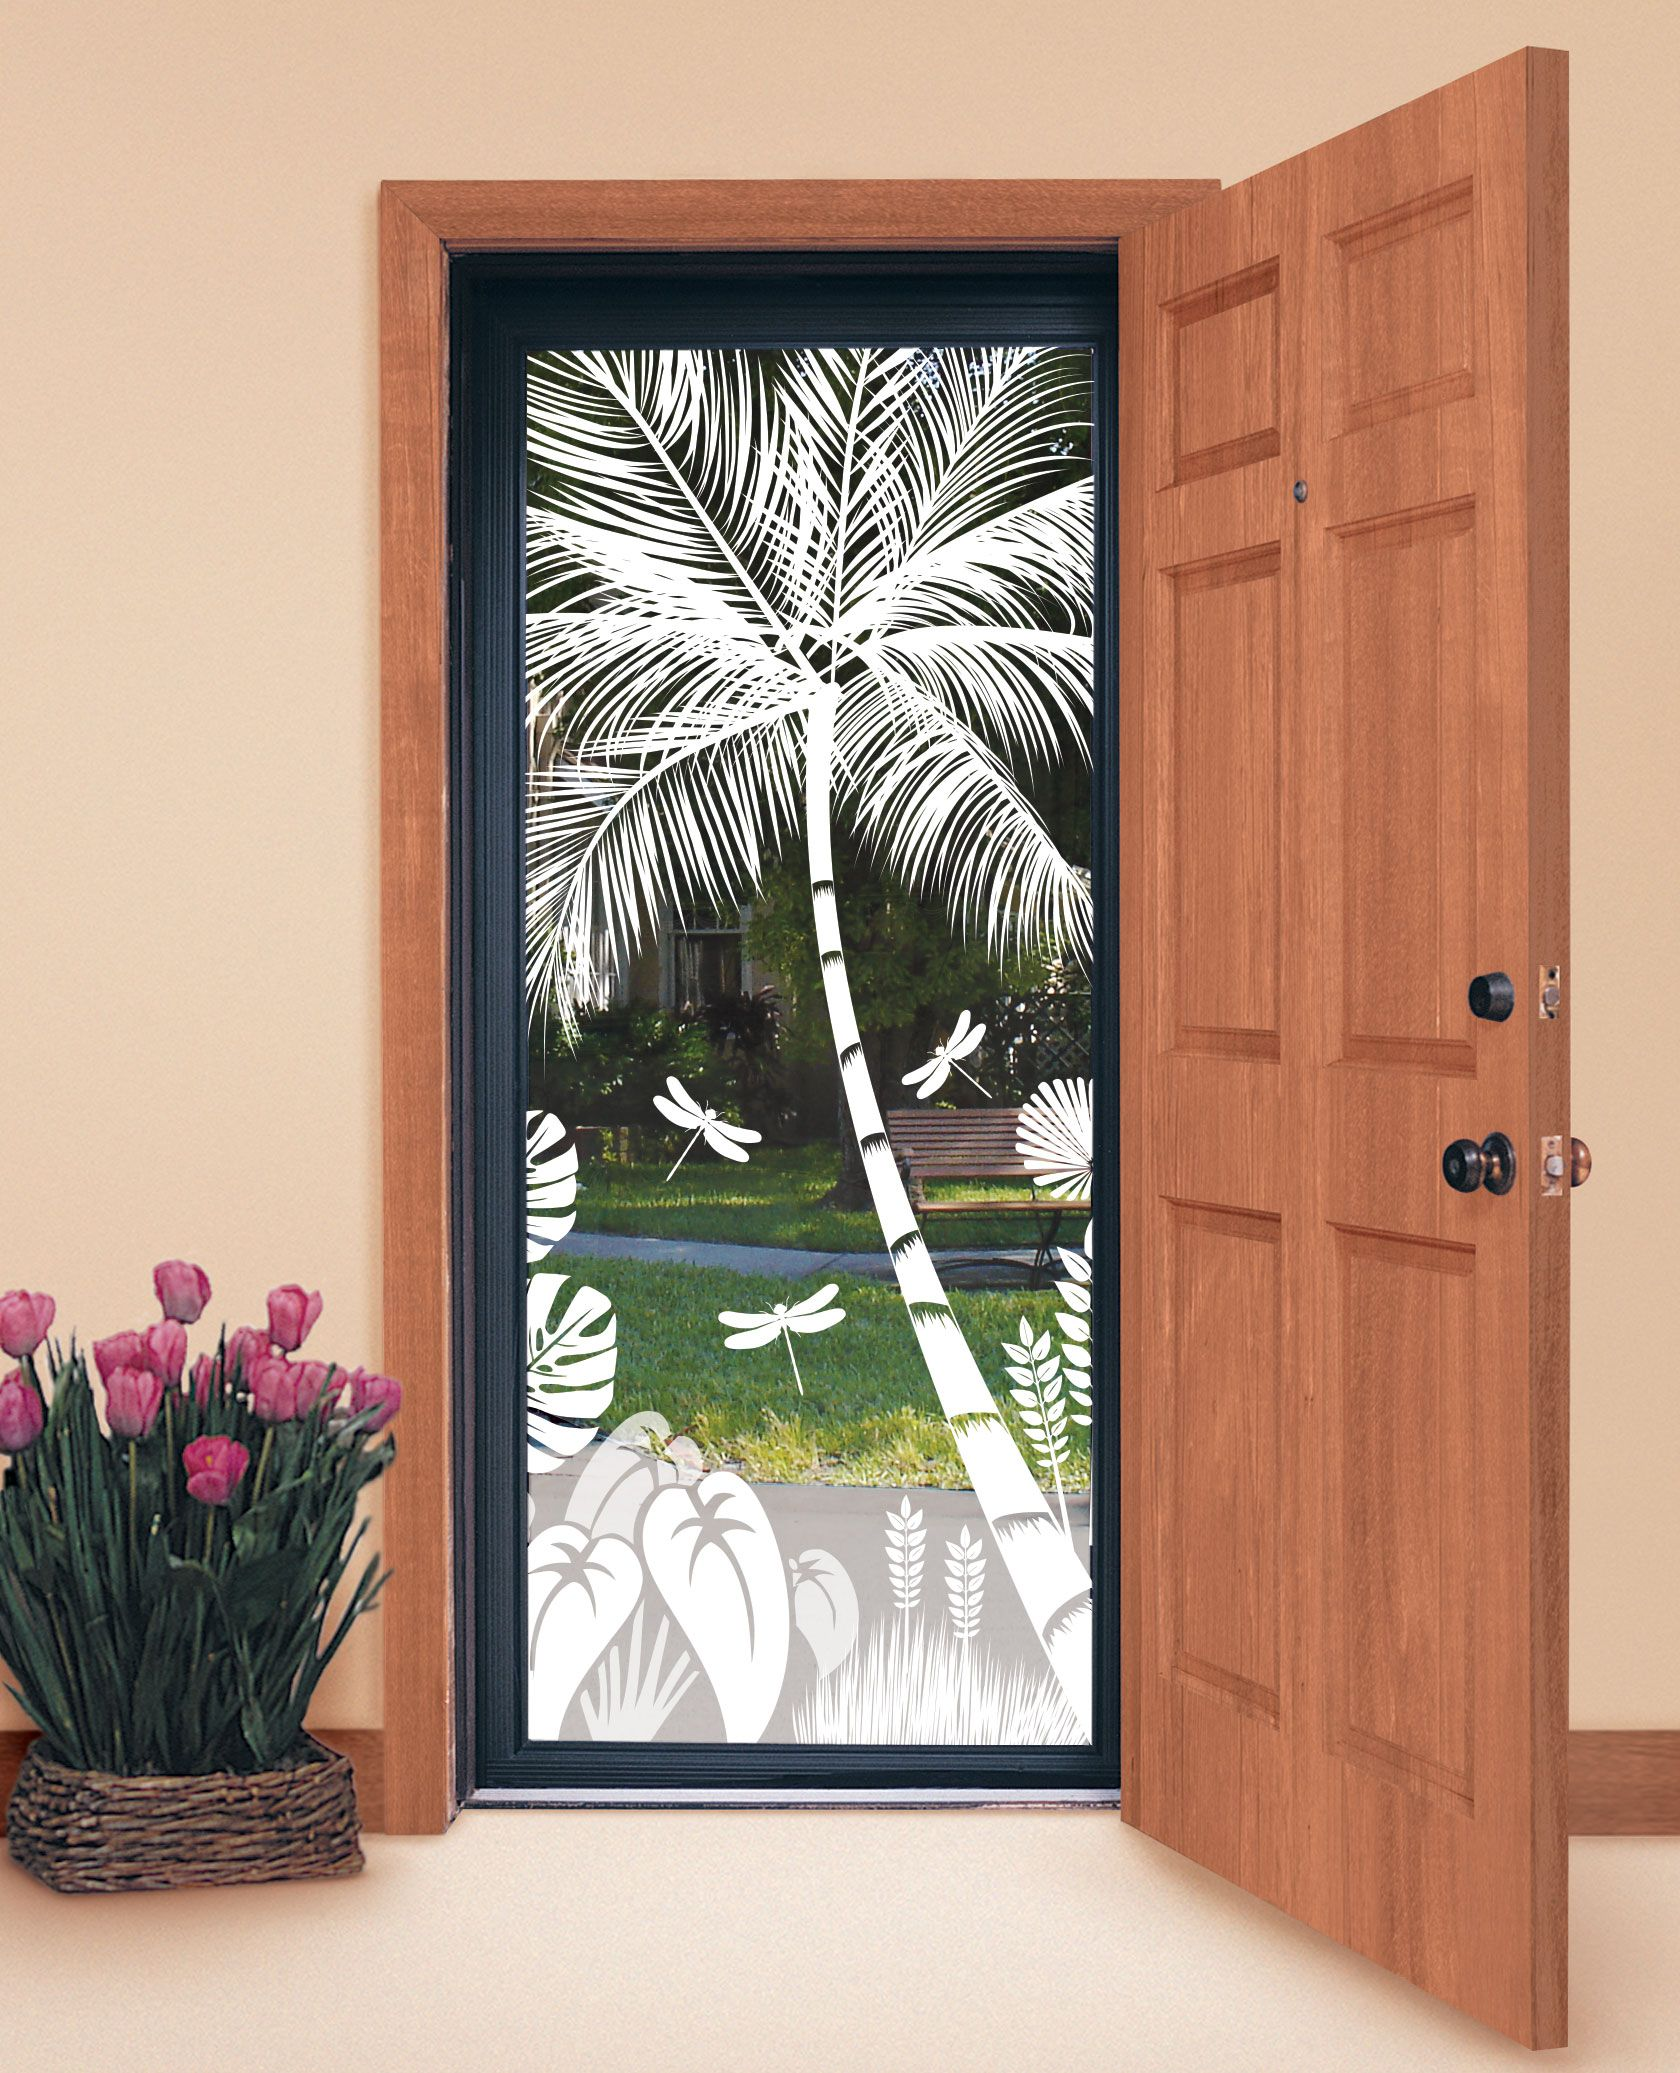 Design Your Own Tropical Etched Glass Windows And Doors ...